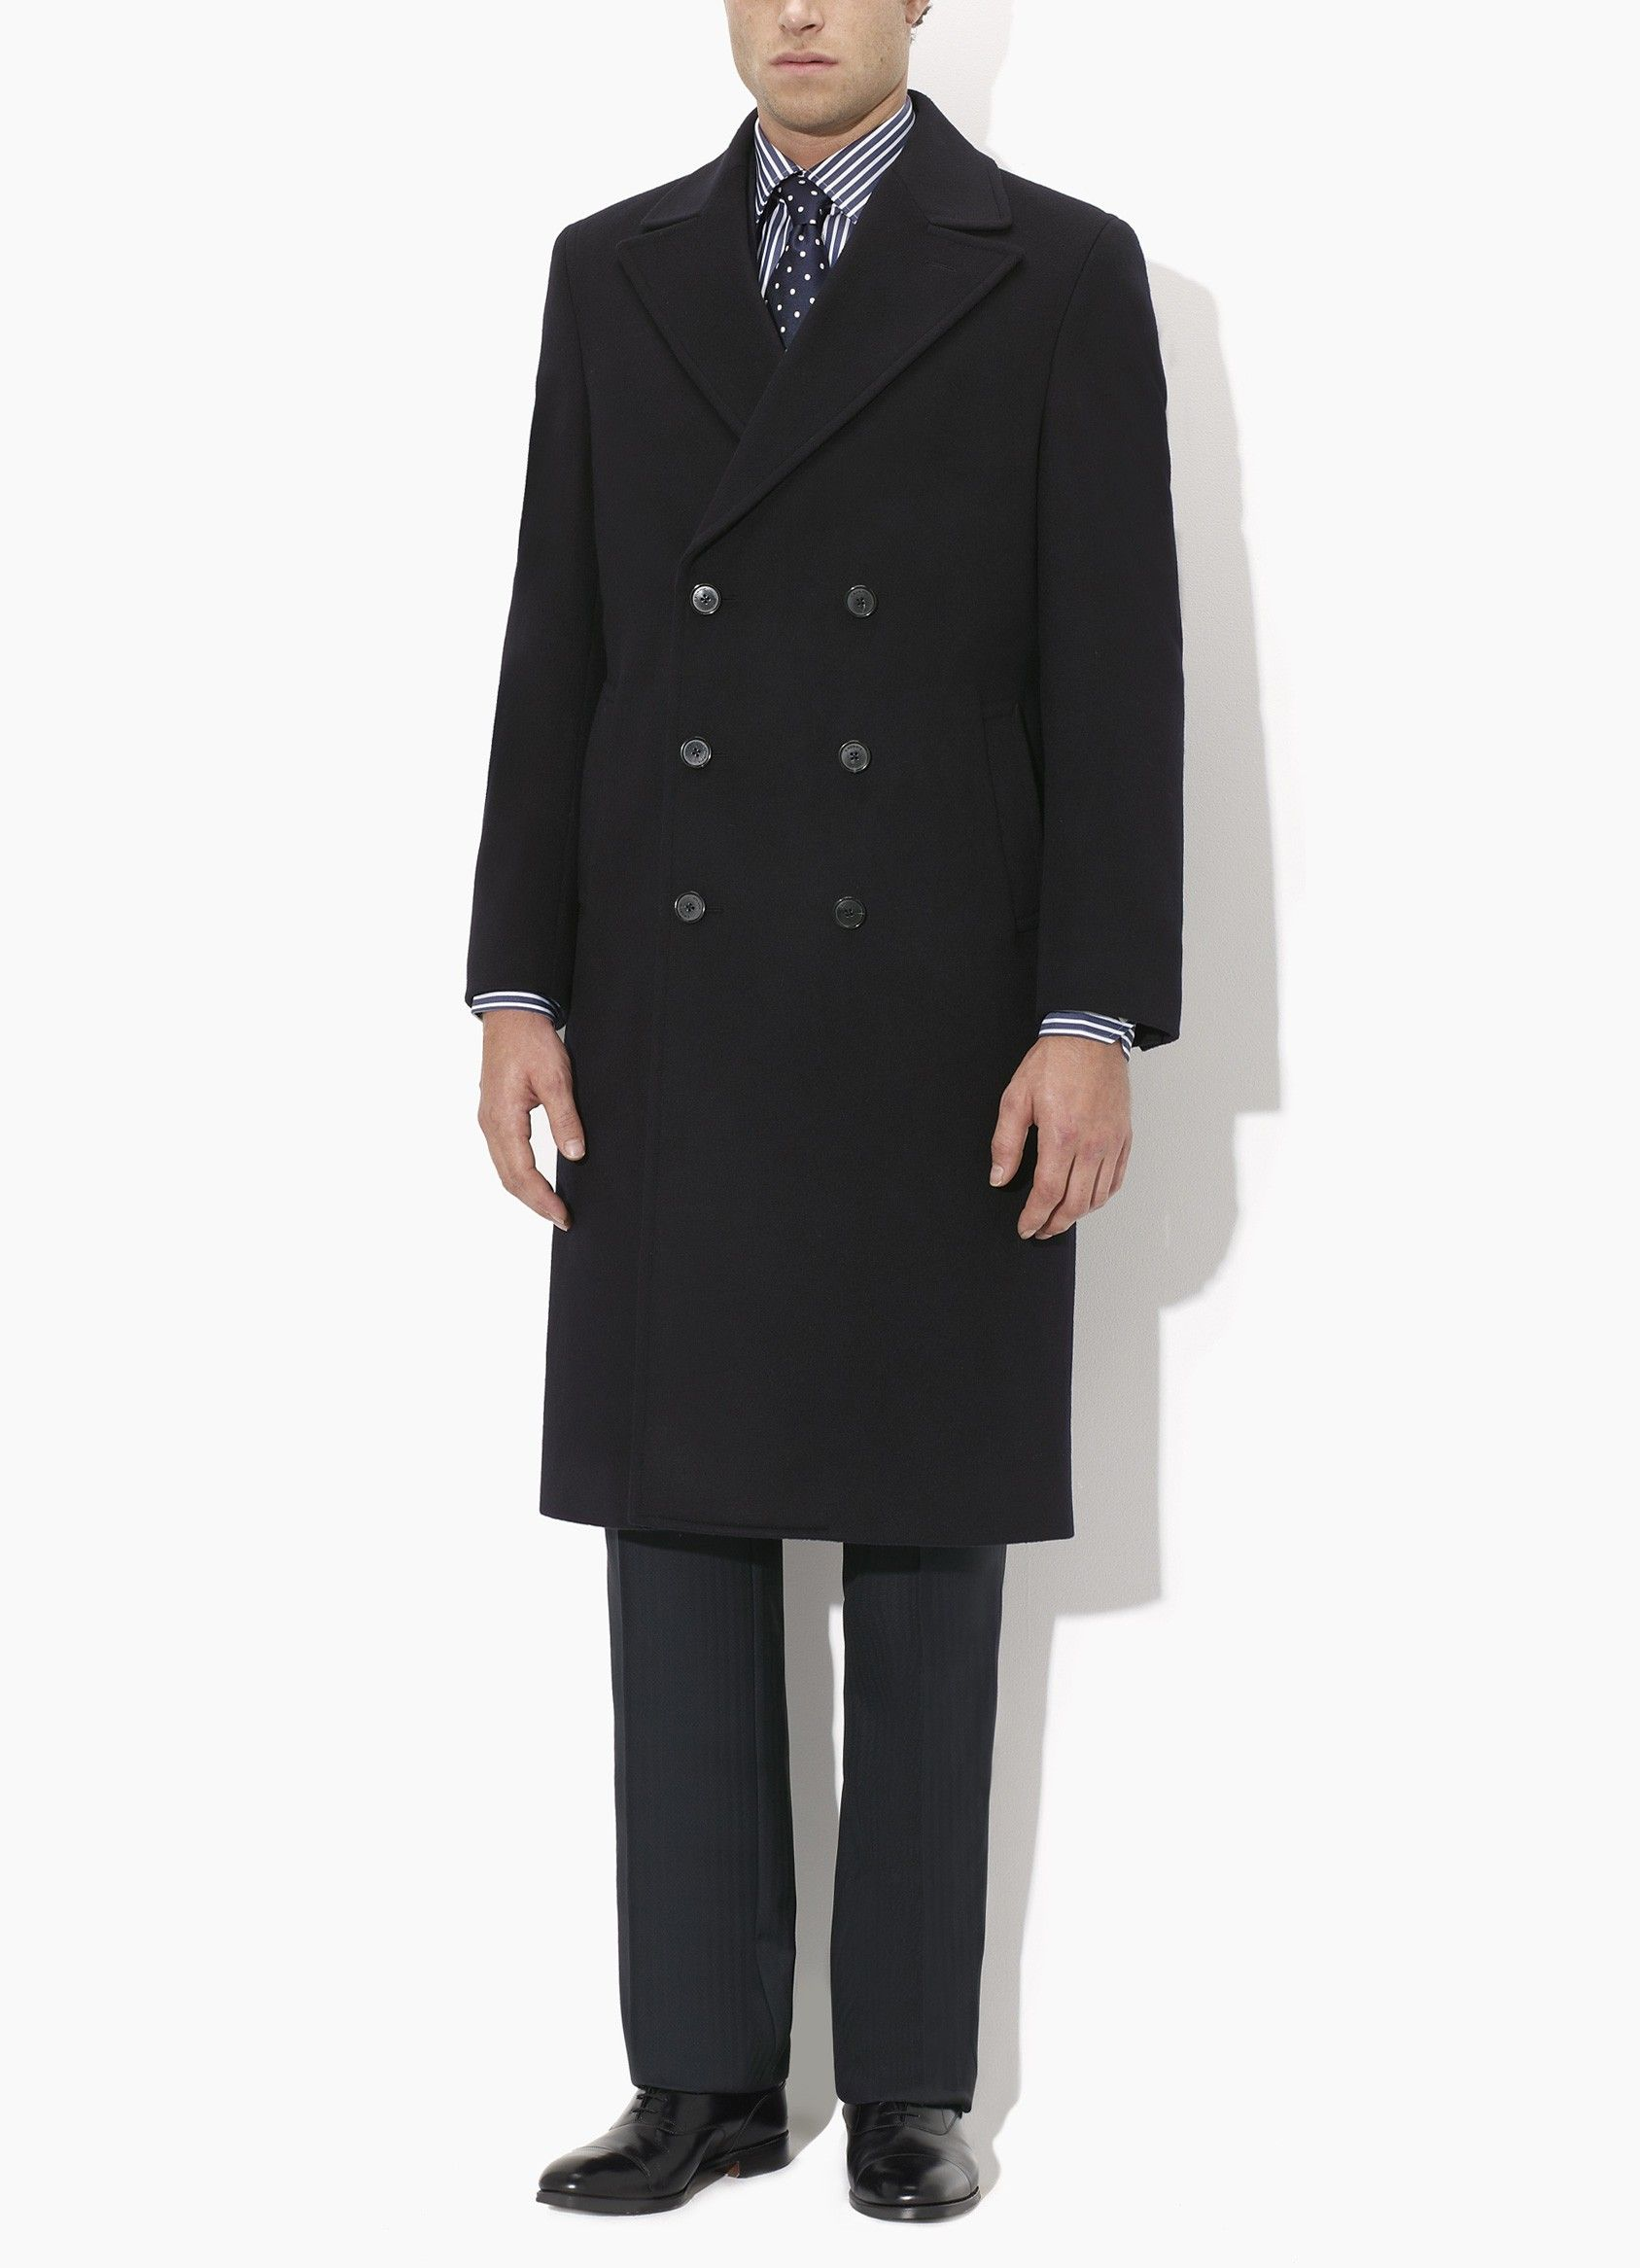 Another beautiful coat by Crombie. Its becoming so hard to choose which I want to buy, though I'm leaning towards the Camel overcoat. | Crombie Navy Classic Double-Breasted Coat, Slim Fit